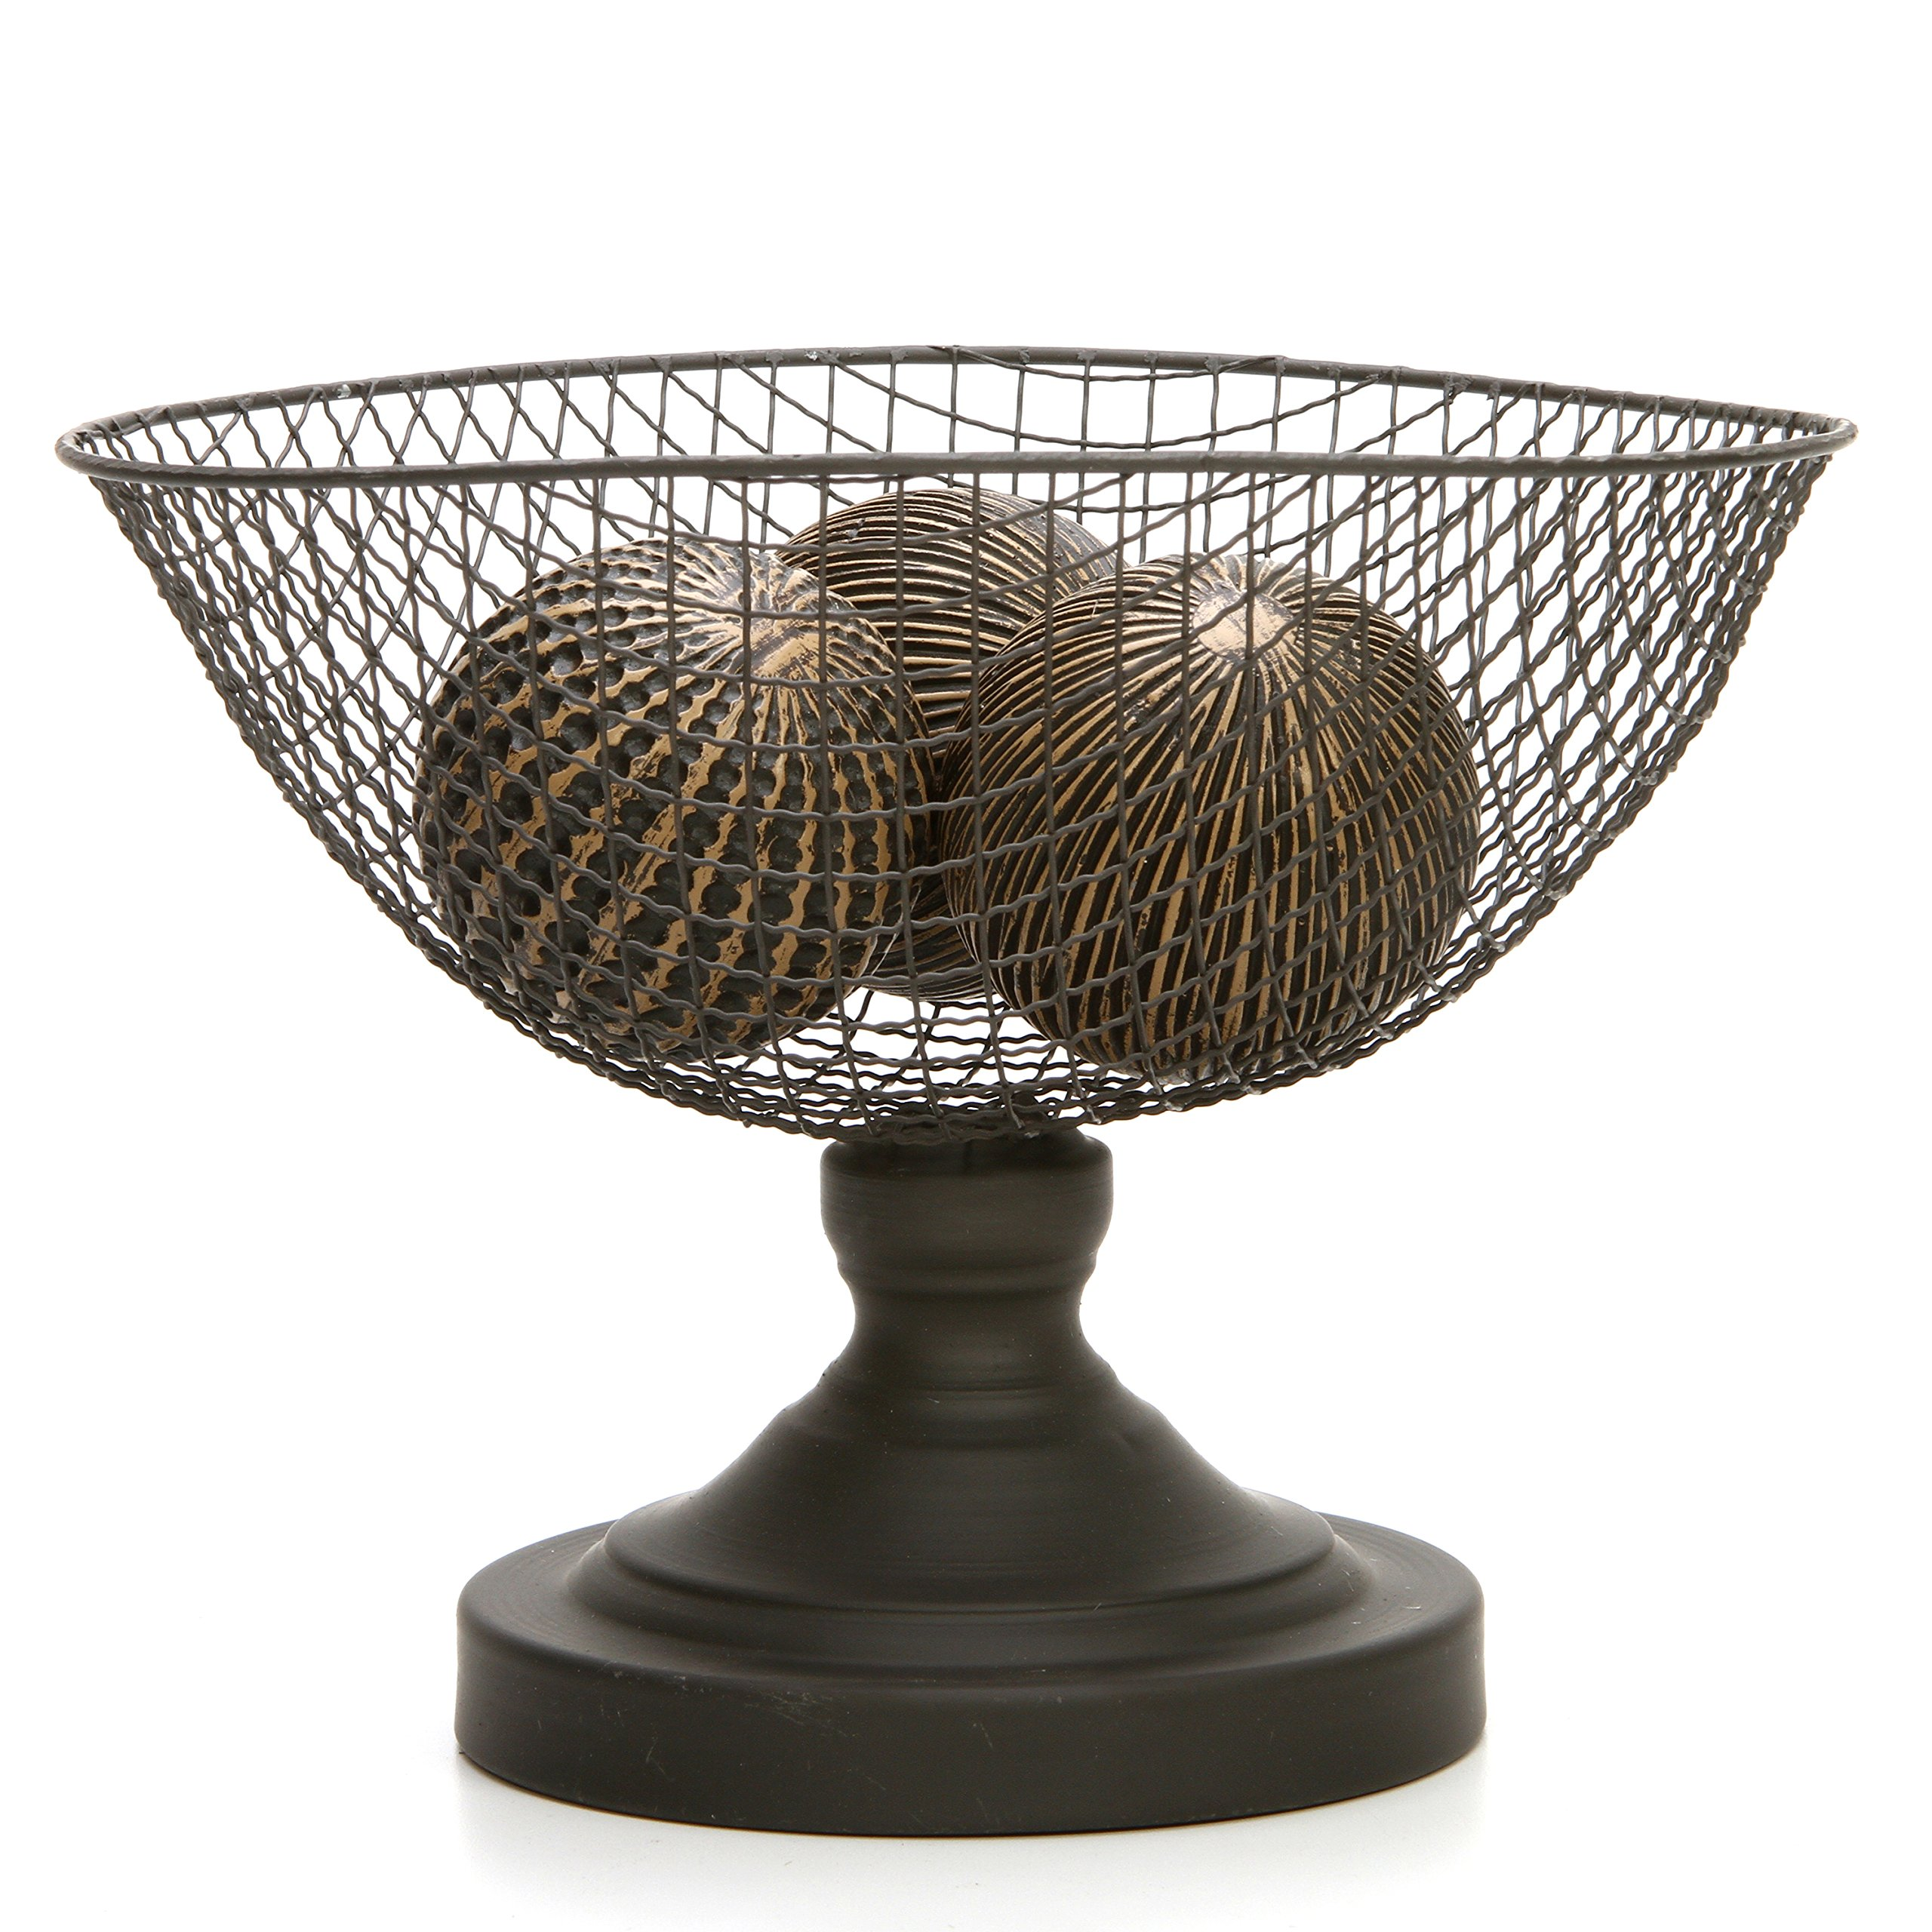 Hosley Wire Mesh Decorative Pedestal Basket/Bowl. Ideal Gift for Wedding, Bridal, and Use for Orbs, Spa, Aromatherapy, Reiki, Chakra, Votive Setting O6